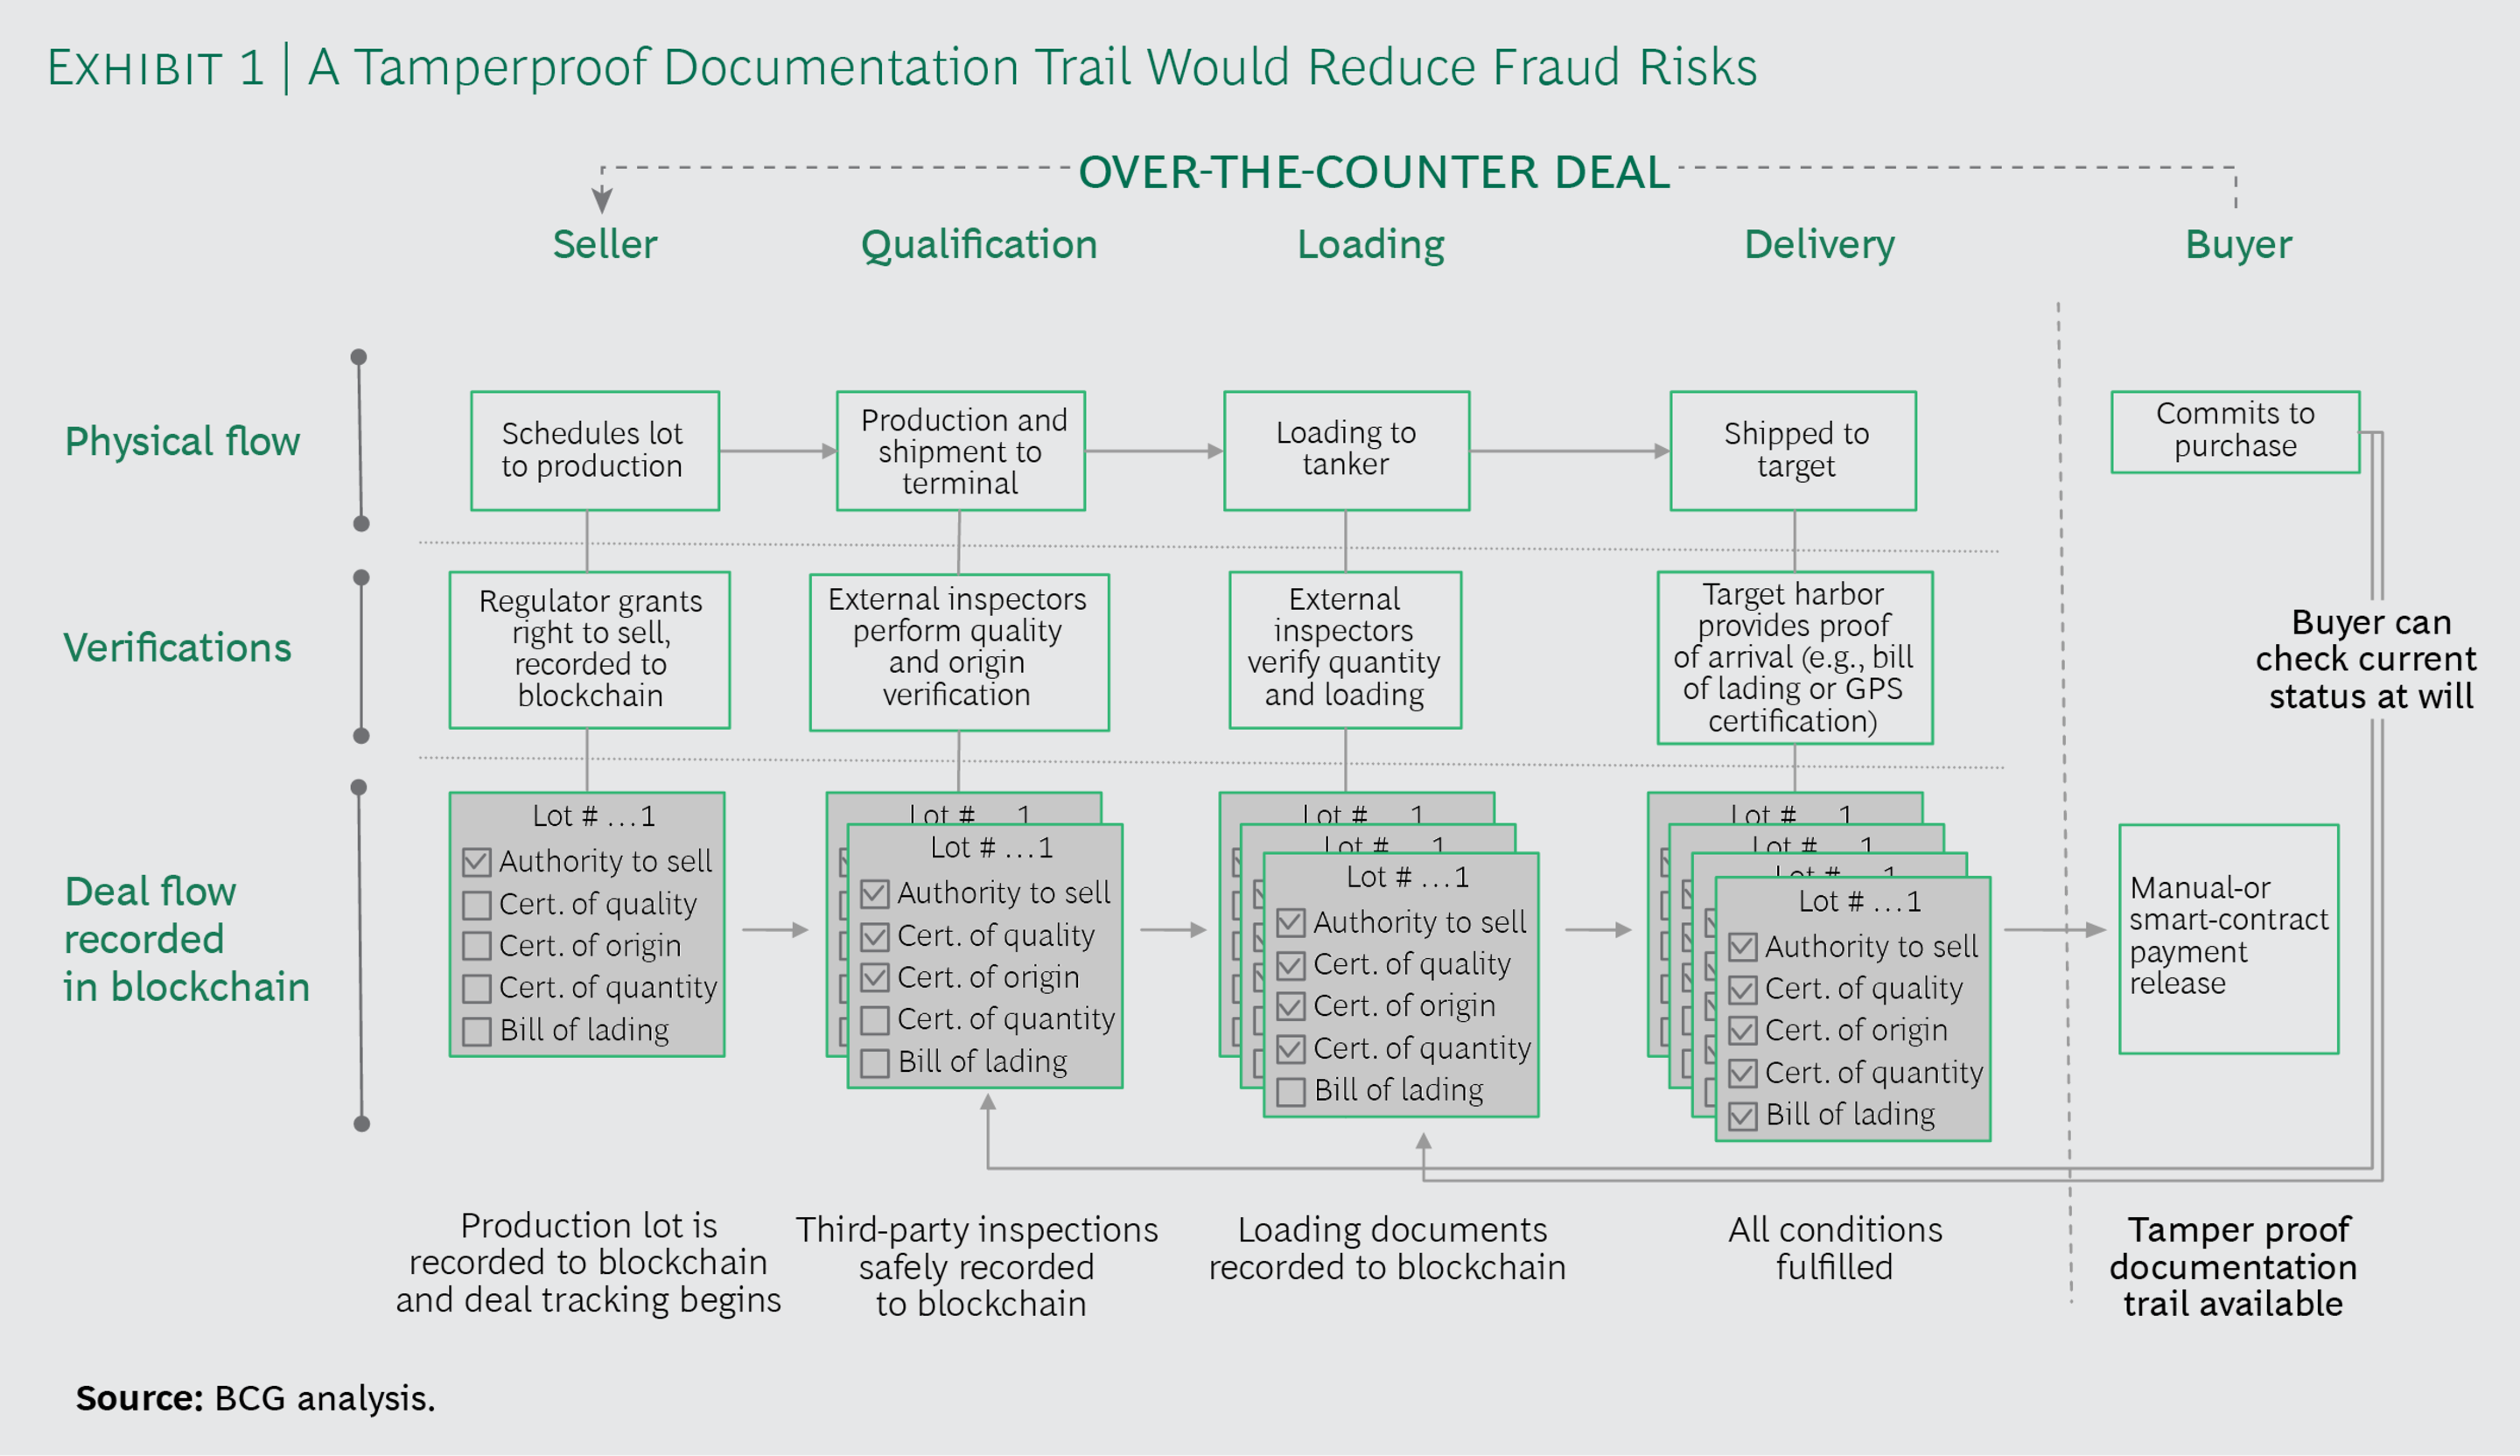 A Tamperproof Documentation Trail Would Reduce Fraud Risks